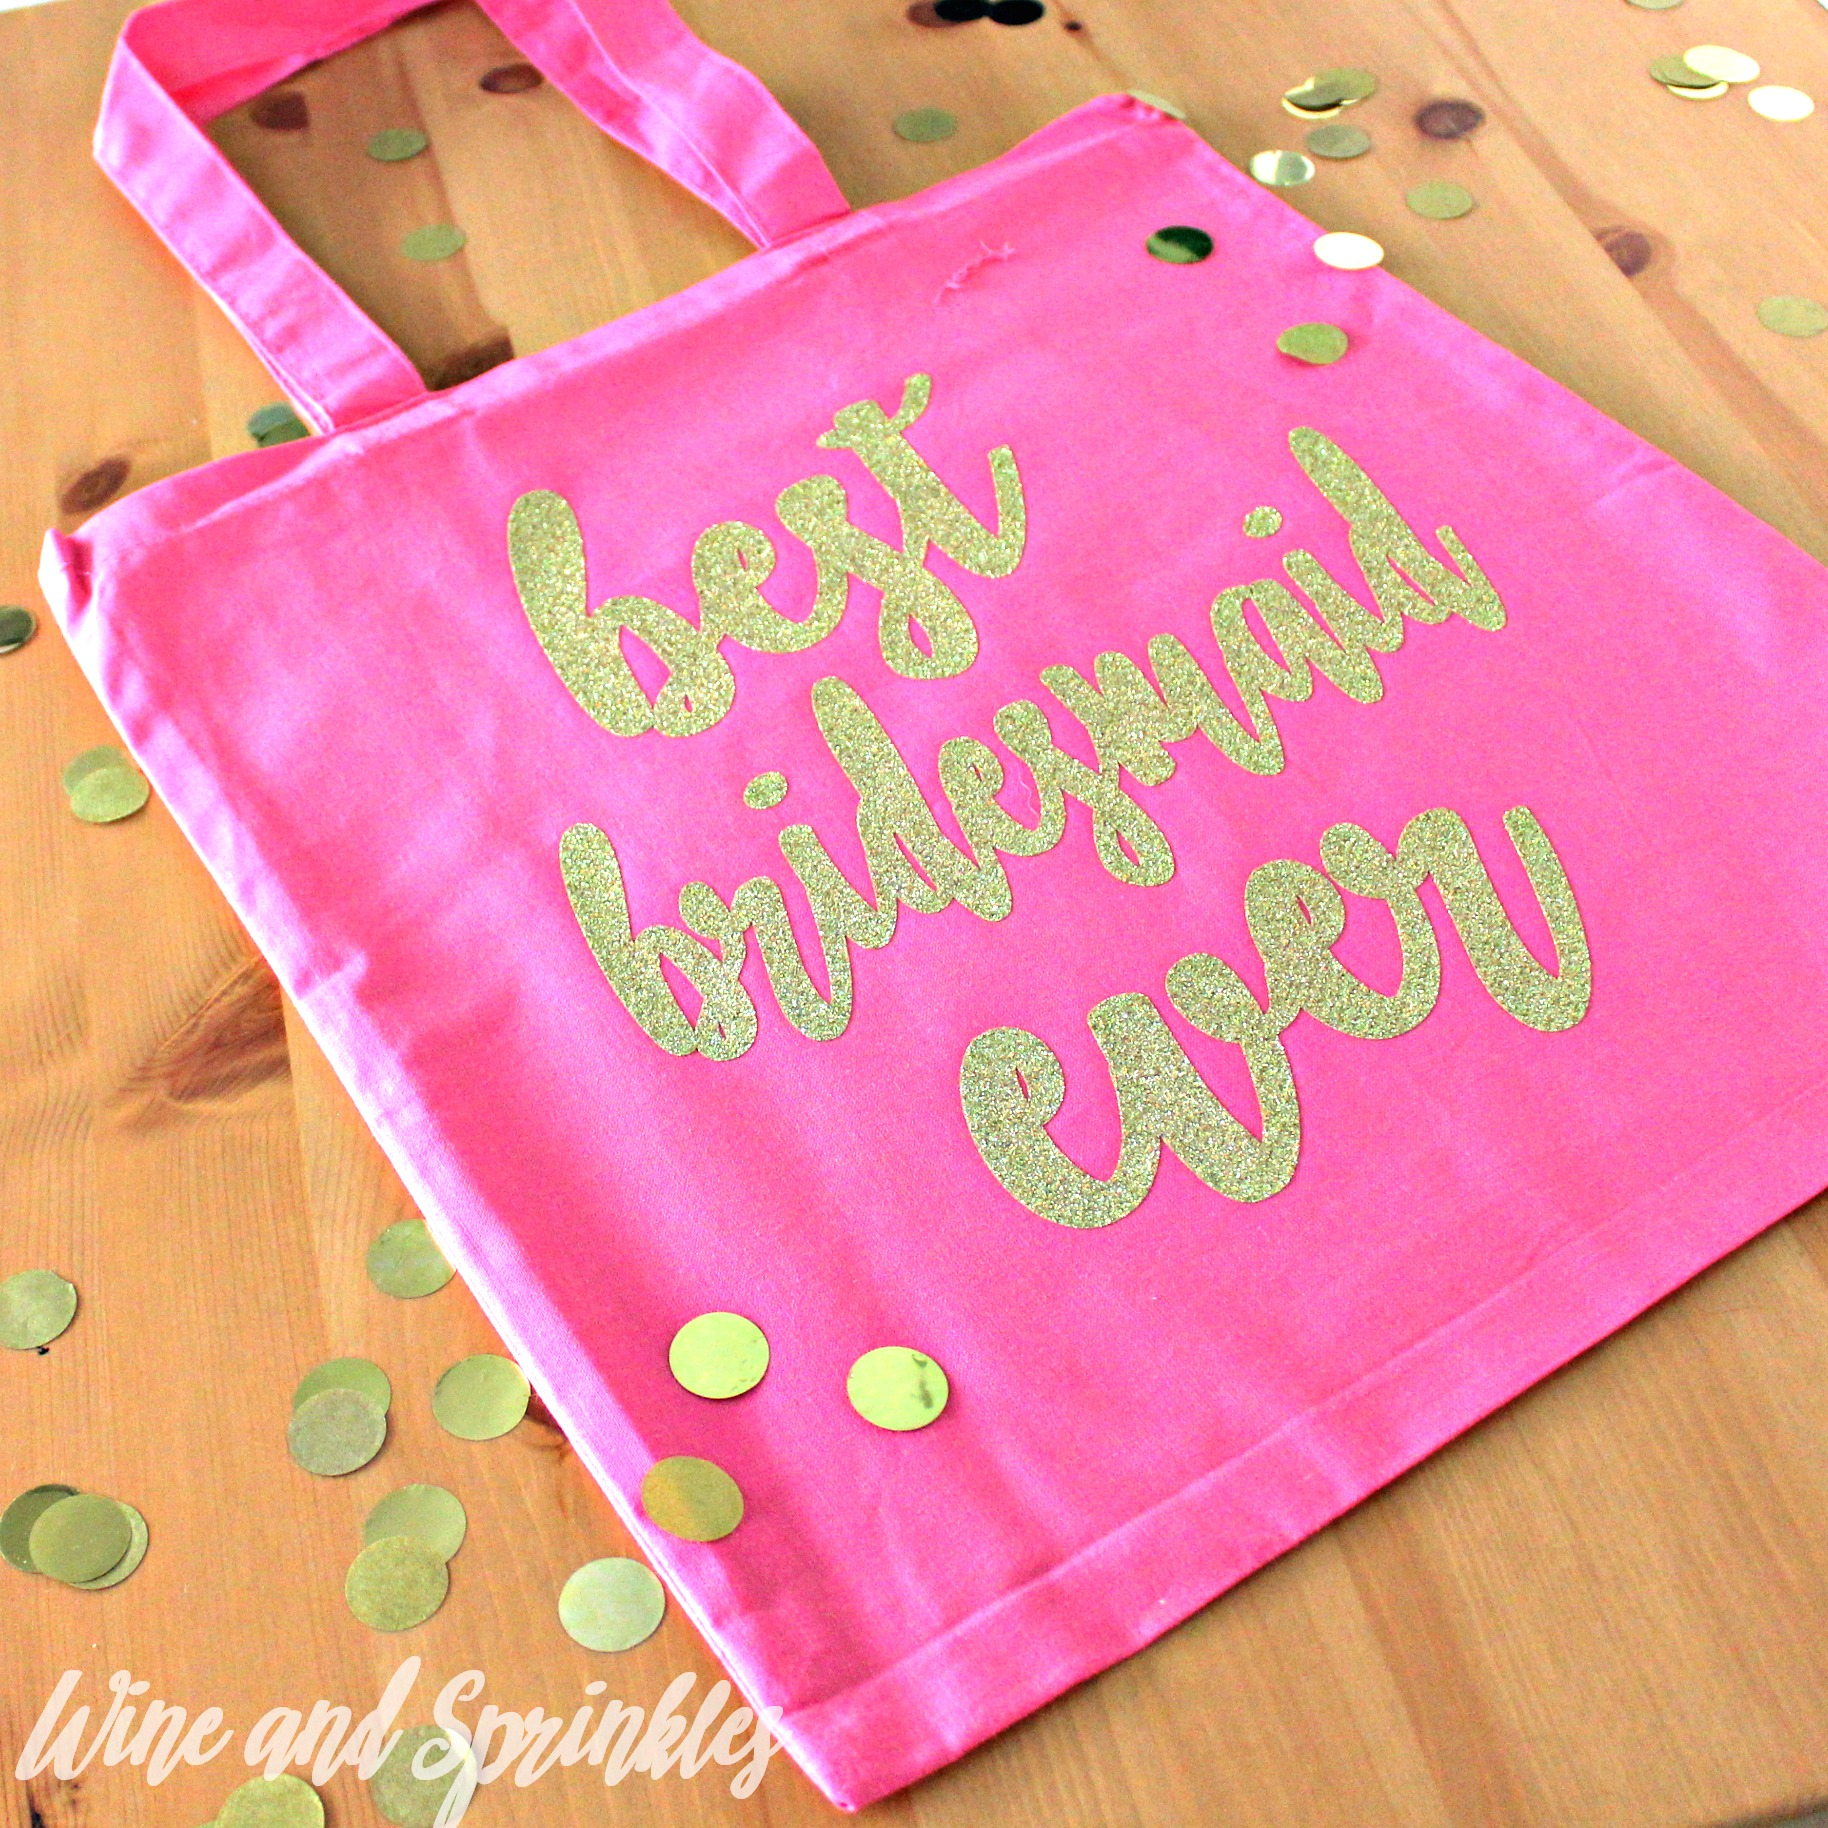 instagram 1 - with text.jpgDIY HTV Iron On Best Bridesmaid Ever Getting Ready Wedding Tote Bags #svgfiles #totebags #bridesmaidgifts